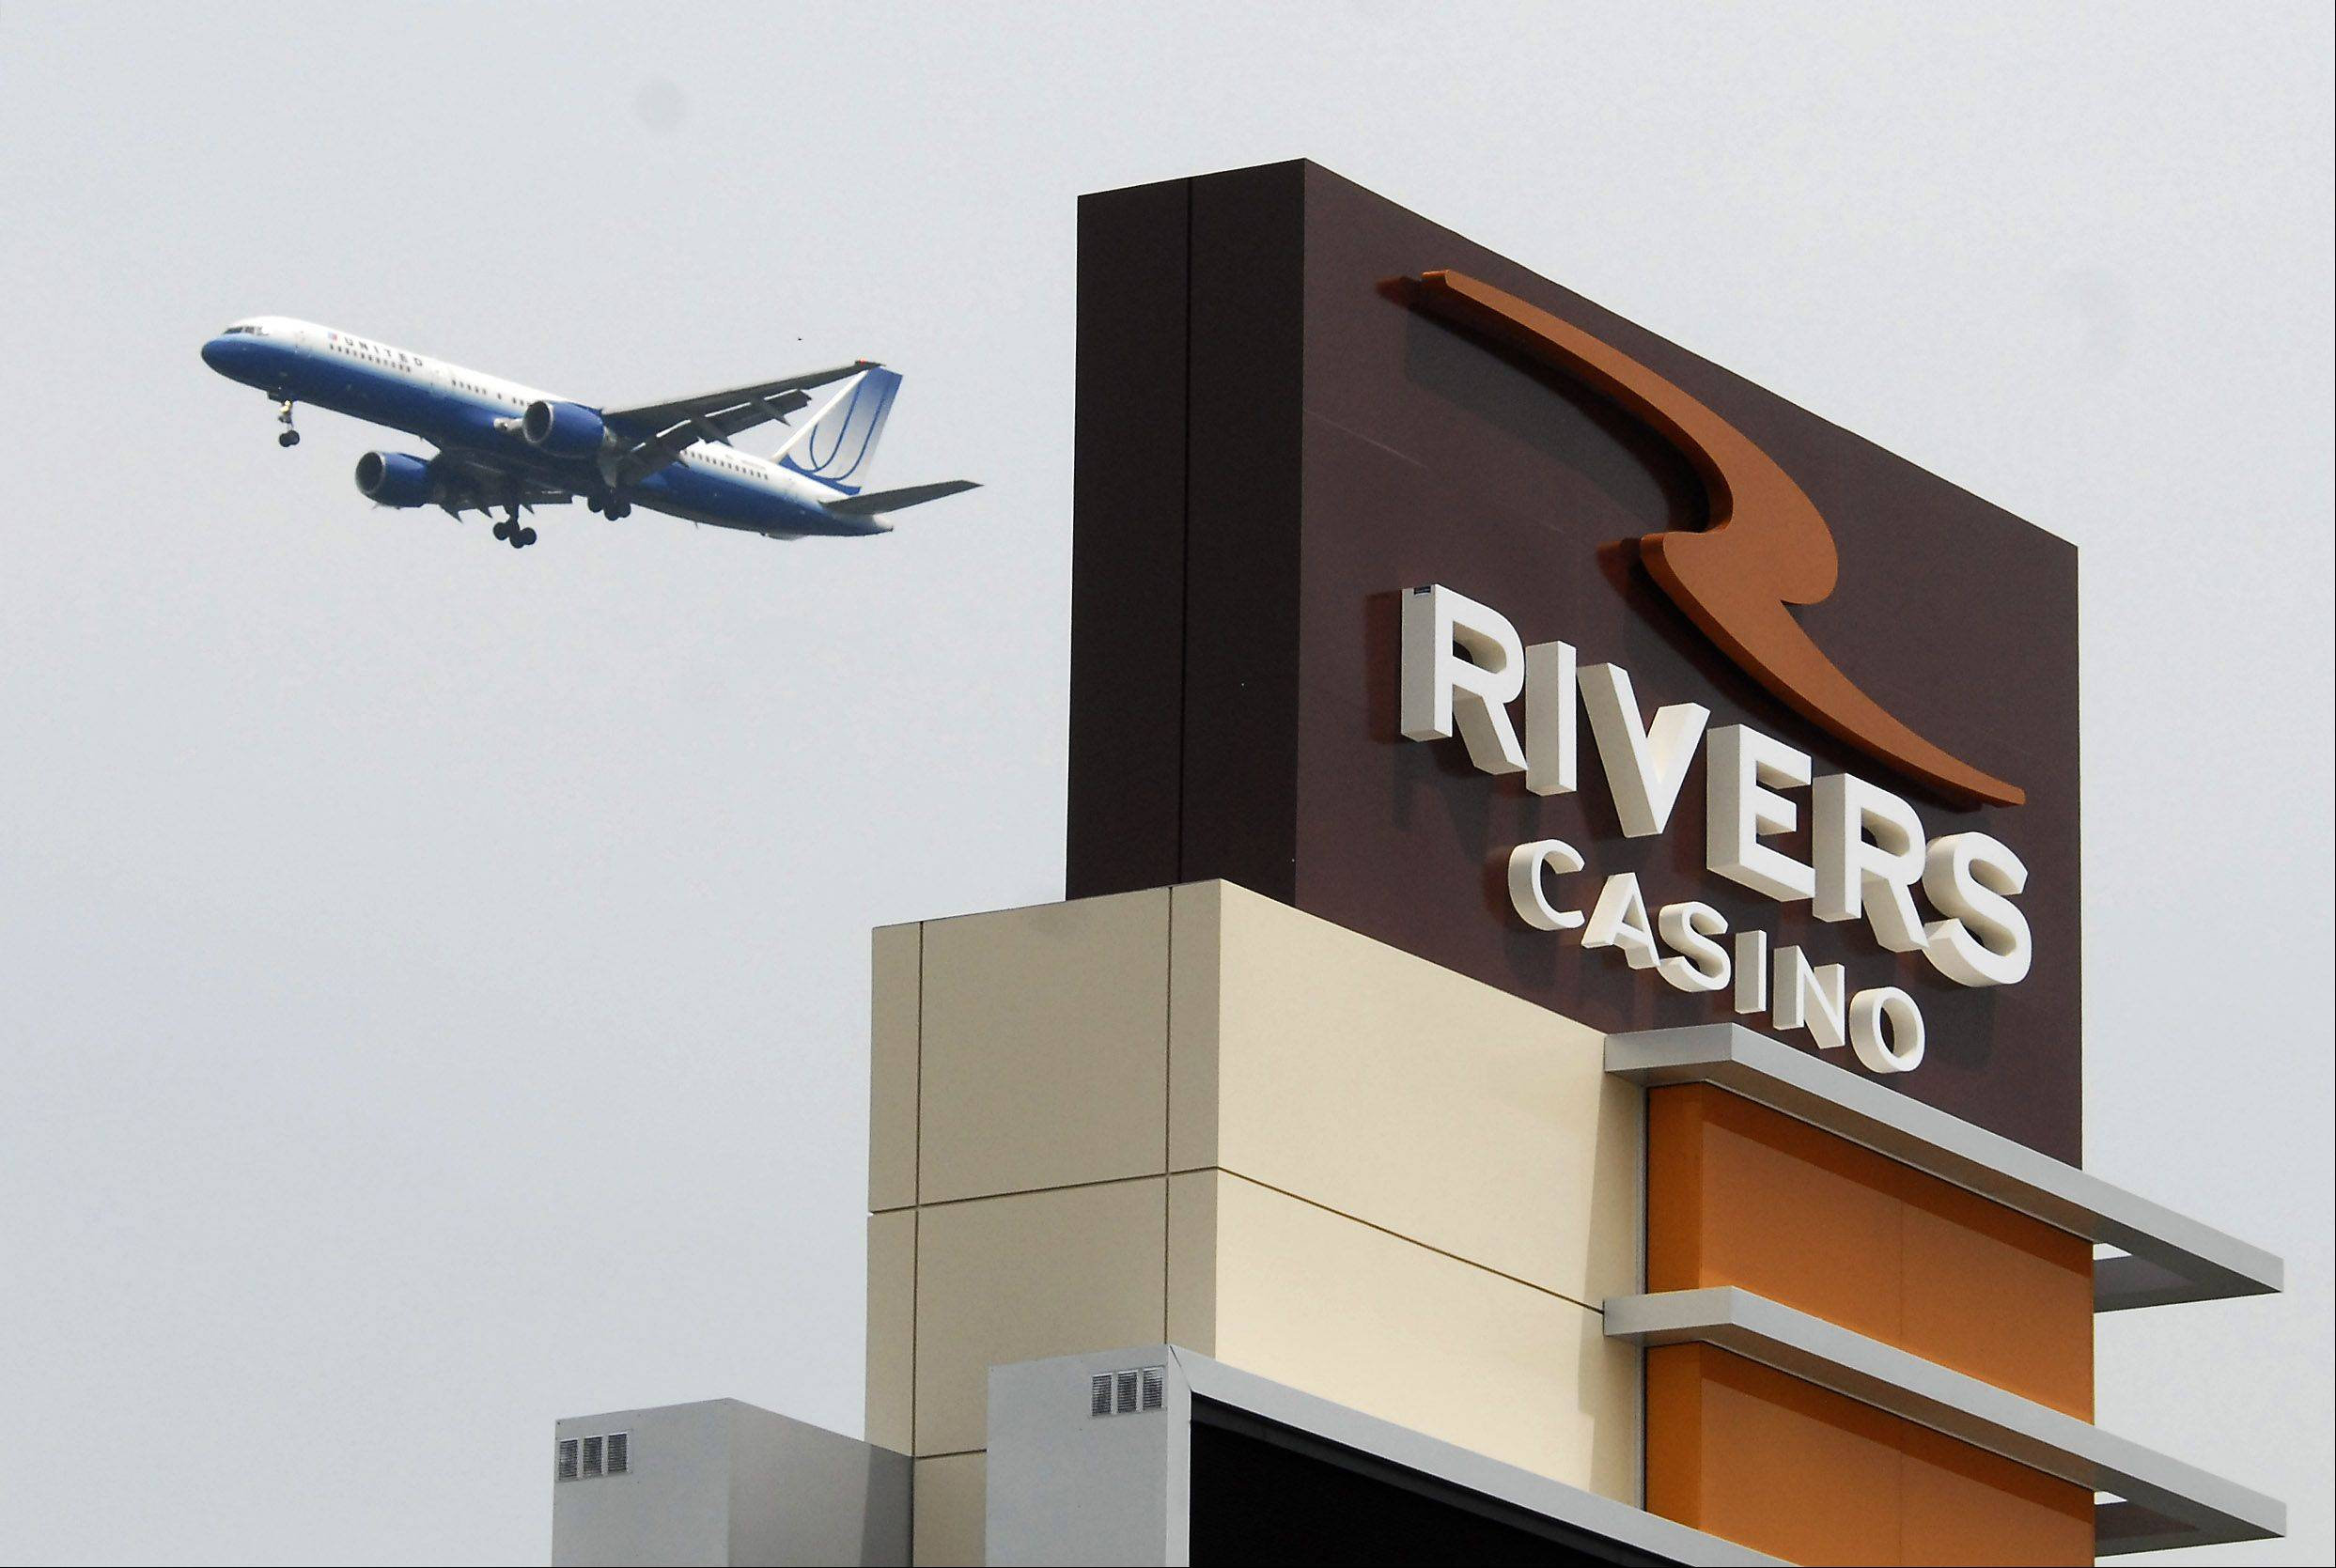 The Illinois Gaming Board has released its July riverboat casino revenue report showing Rivers Casino in Des Plaines raked in more than $17 million in its first two weeks of operation since opening July 18 to massive crowds.